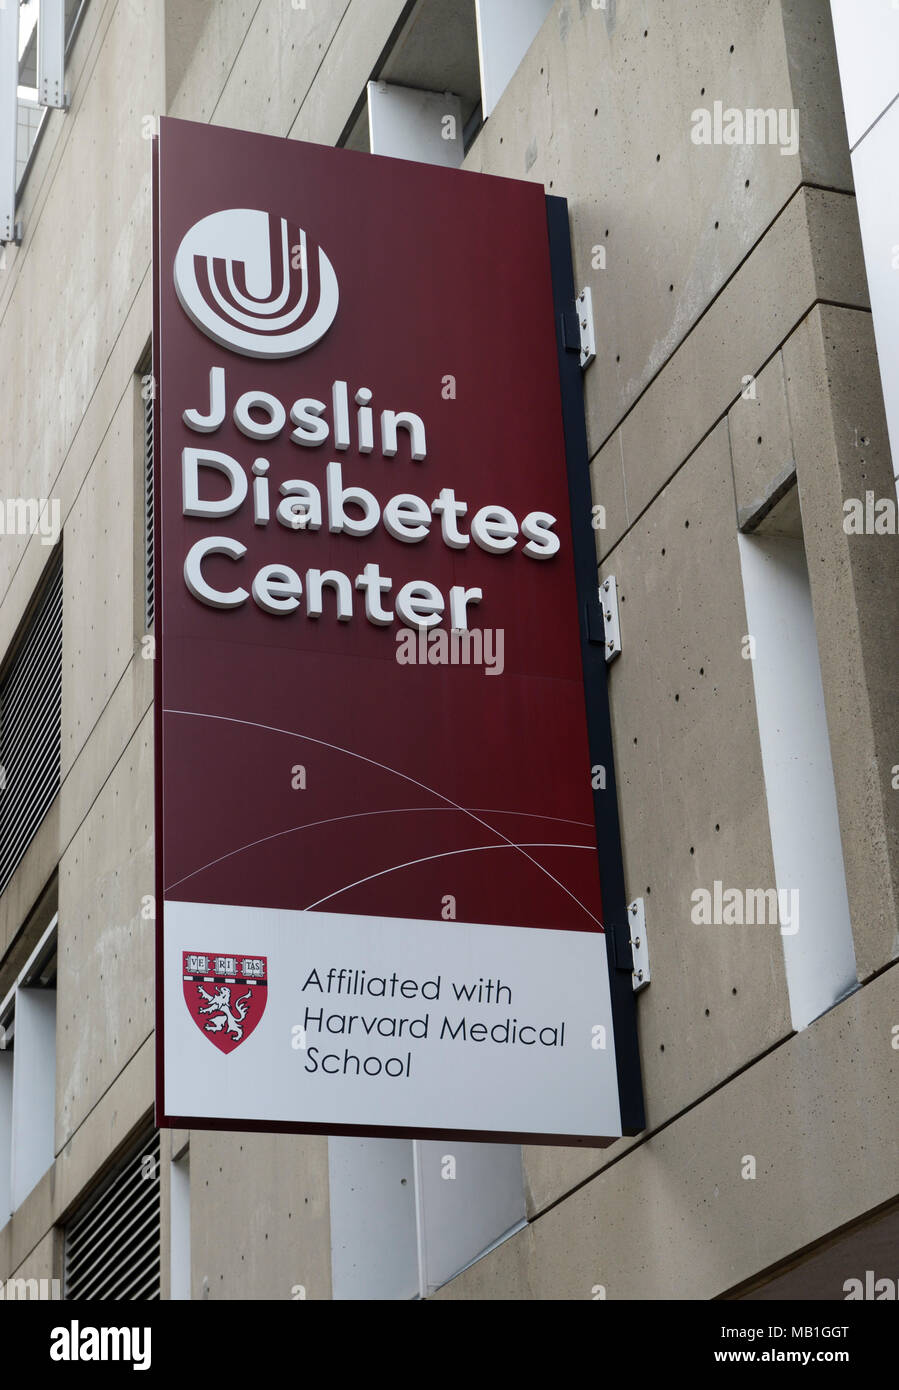 Joslin Diabetes Center, Boston MA. Diabetes research and treatment hospital affiliated with Harvard Medical School - Stock Image